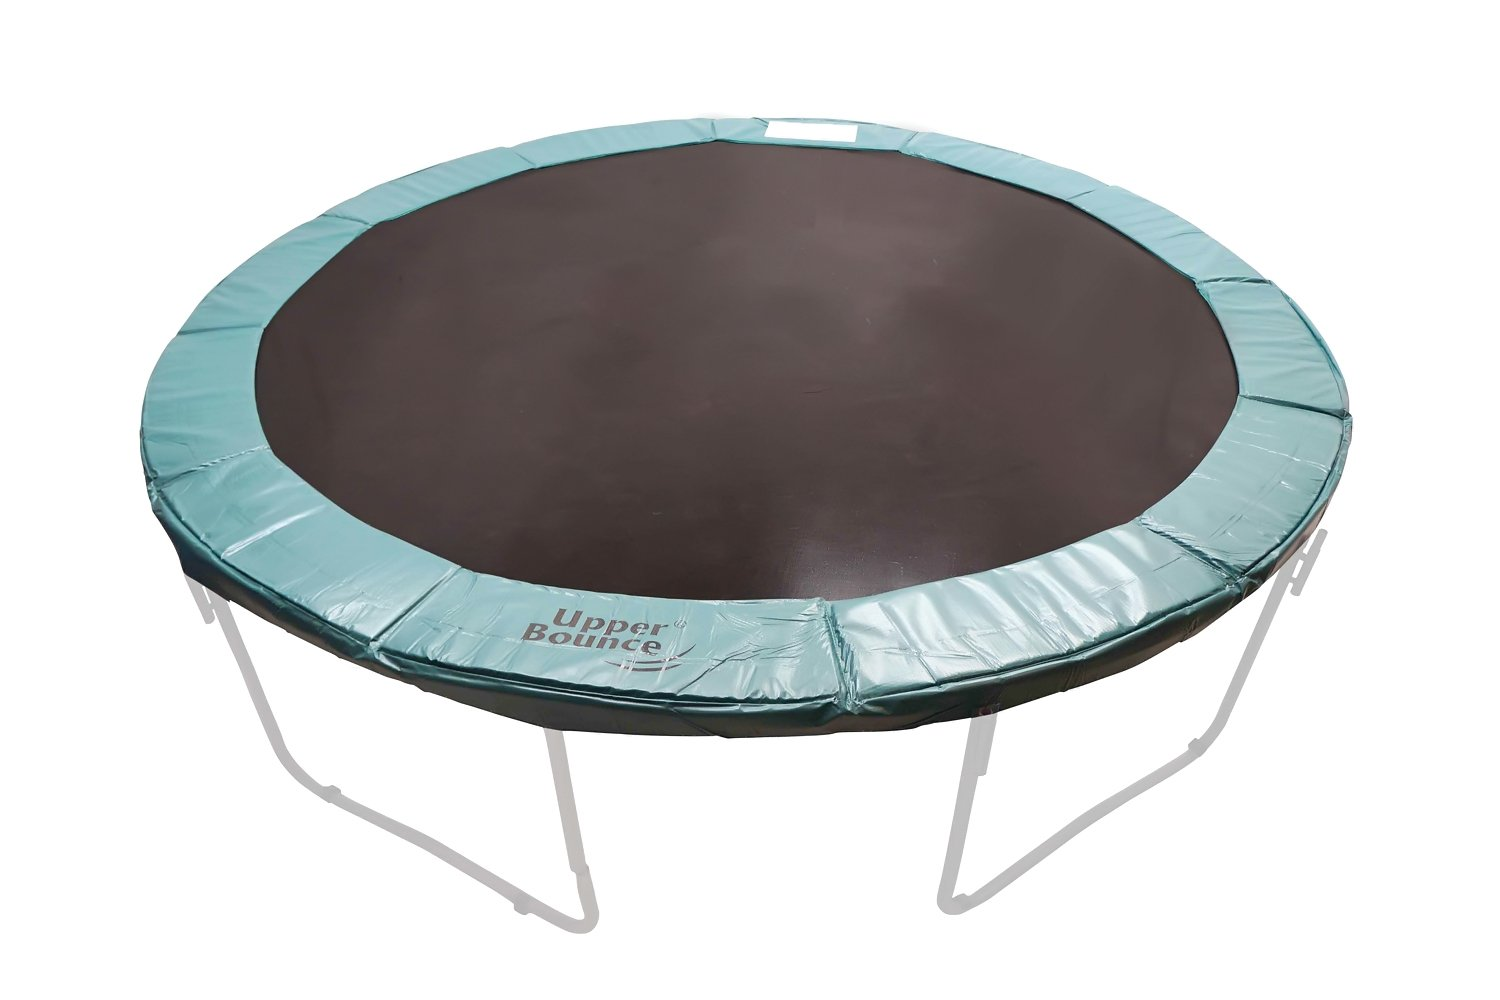 Upper Bounce 12' Super Trampoline Replacement Safety Pad With Spring Cover Fits 12 FT Round Trampoline Frames With 10 wide In Green Color by Upper Bounce